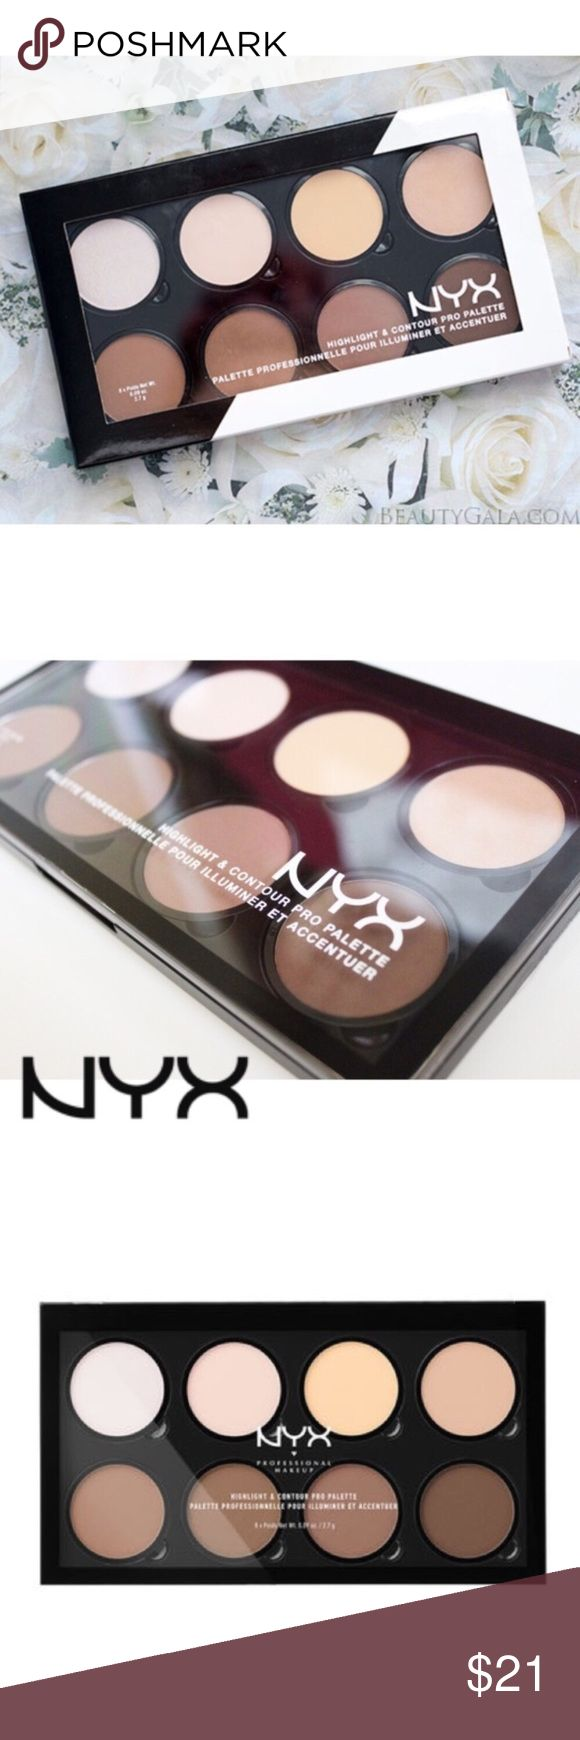 "✨NEW NYX Highlight and Contour Pro Palette🎨 🛍Brand new in box, sealed & unopened, NYX Highlight and Contour Pro Palette. From my smoke free home. Original Retail: $30  💜ABOUT: ""Define your features like a pro with NYX Cosmetics refillable Highlight & Contour Pro Palette! Each set includes four customizable highlighting and contouring shades perfect for emphasizing your favorite features."" NYX Makeup"